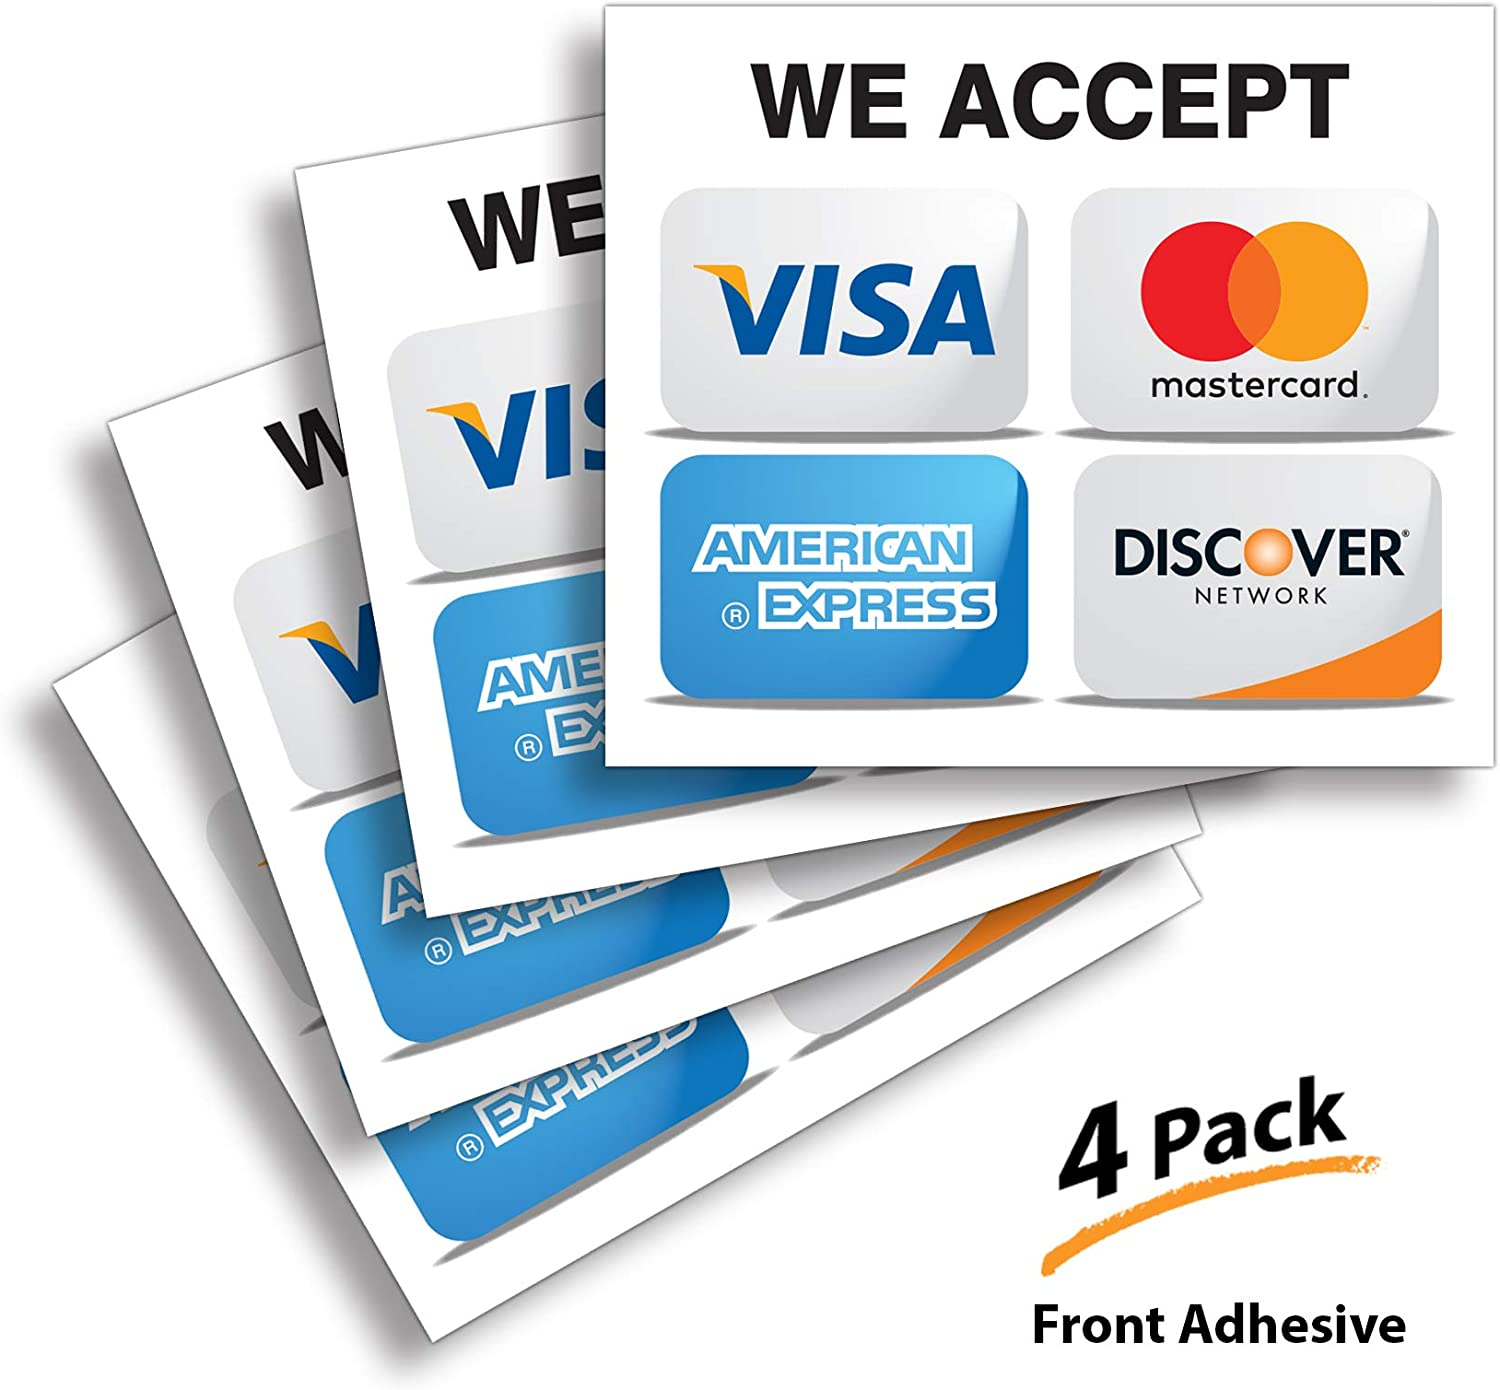 """Credit Card Sticker Signs Stickers – 4 Pack 7""""x 6"""" Inch - We Accept Visa, MasterCard, Amex & Discover, Premium Front Adhesive Vinyl to Apply Inside The Window or Glass Door for Stores Business"""